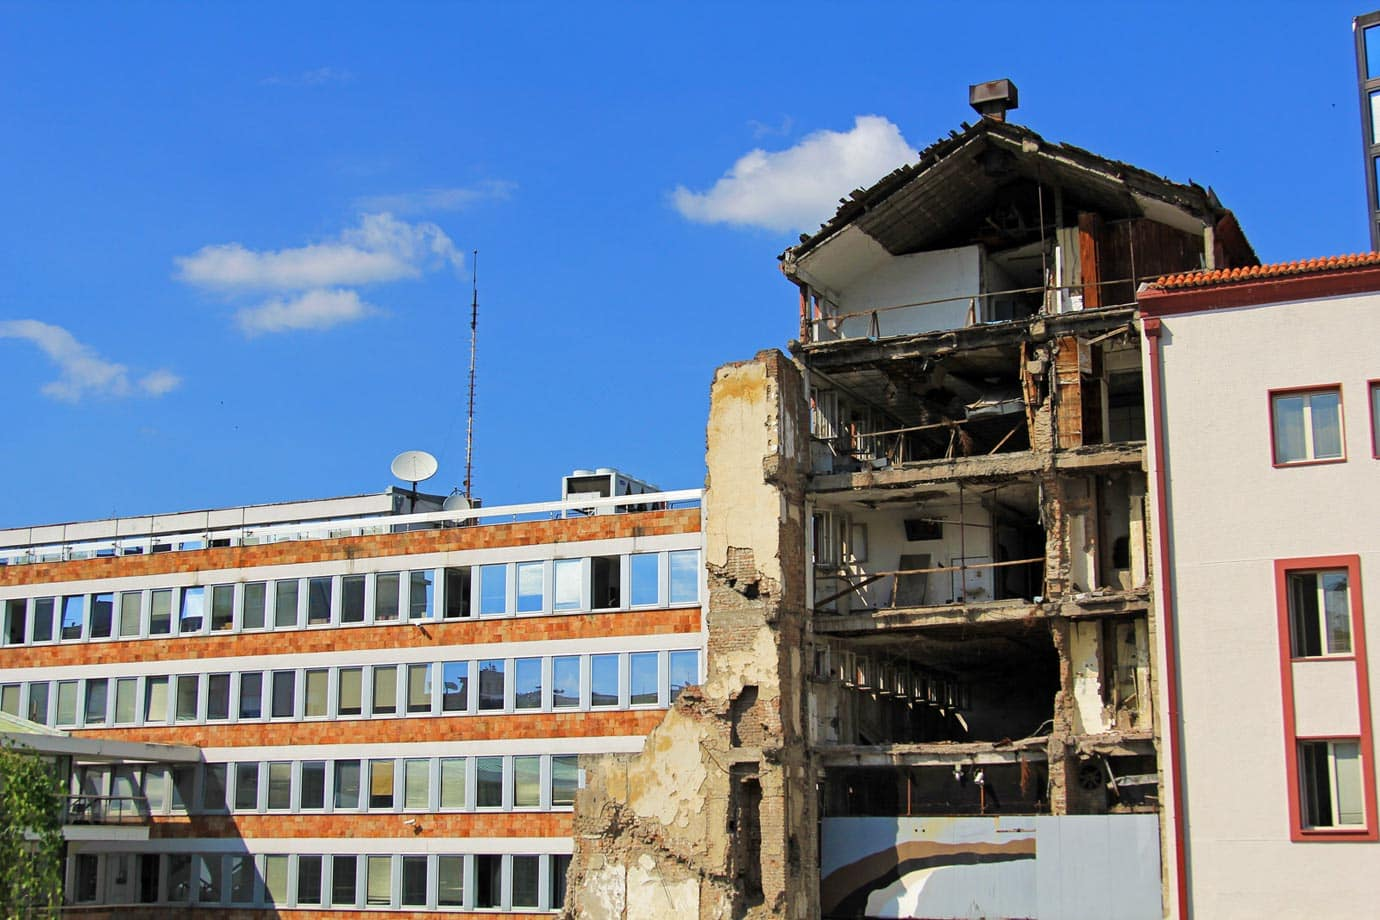 A bombed building in Belgrade that remains untouched as a memorial to the bombings of 1999